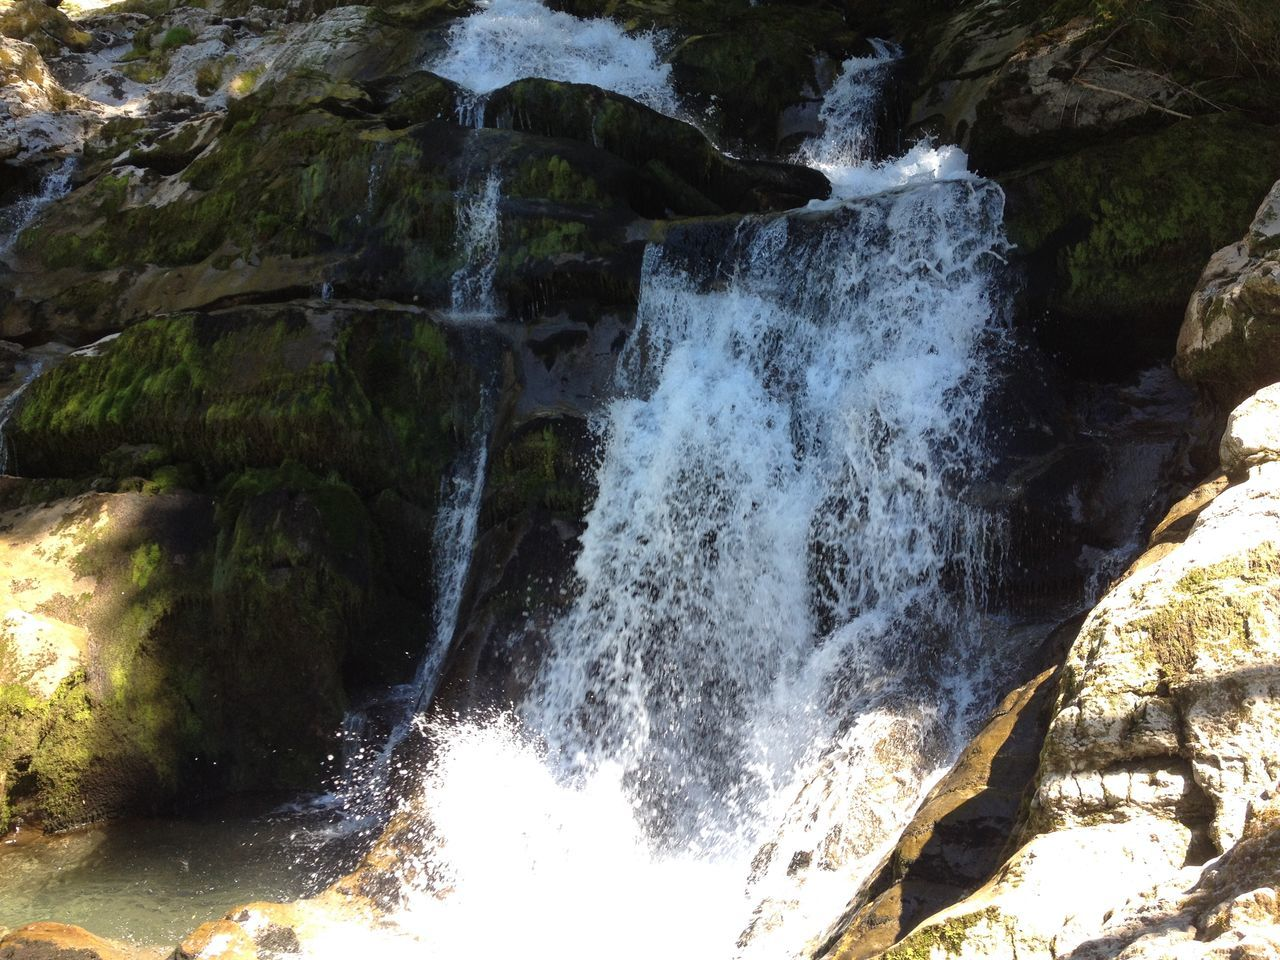 Giessbachfall Photography July 2015 Switzerland Beauty In Nature Day Forest Motion Nature No People Outdoors Power In Nature Roaring Waterfall Rushing Water, Scenics Unique Beauty Water Waterfall